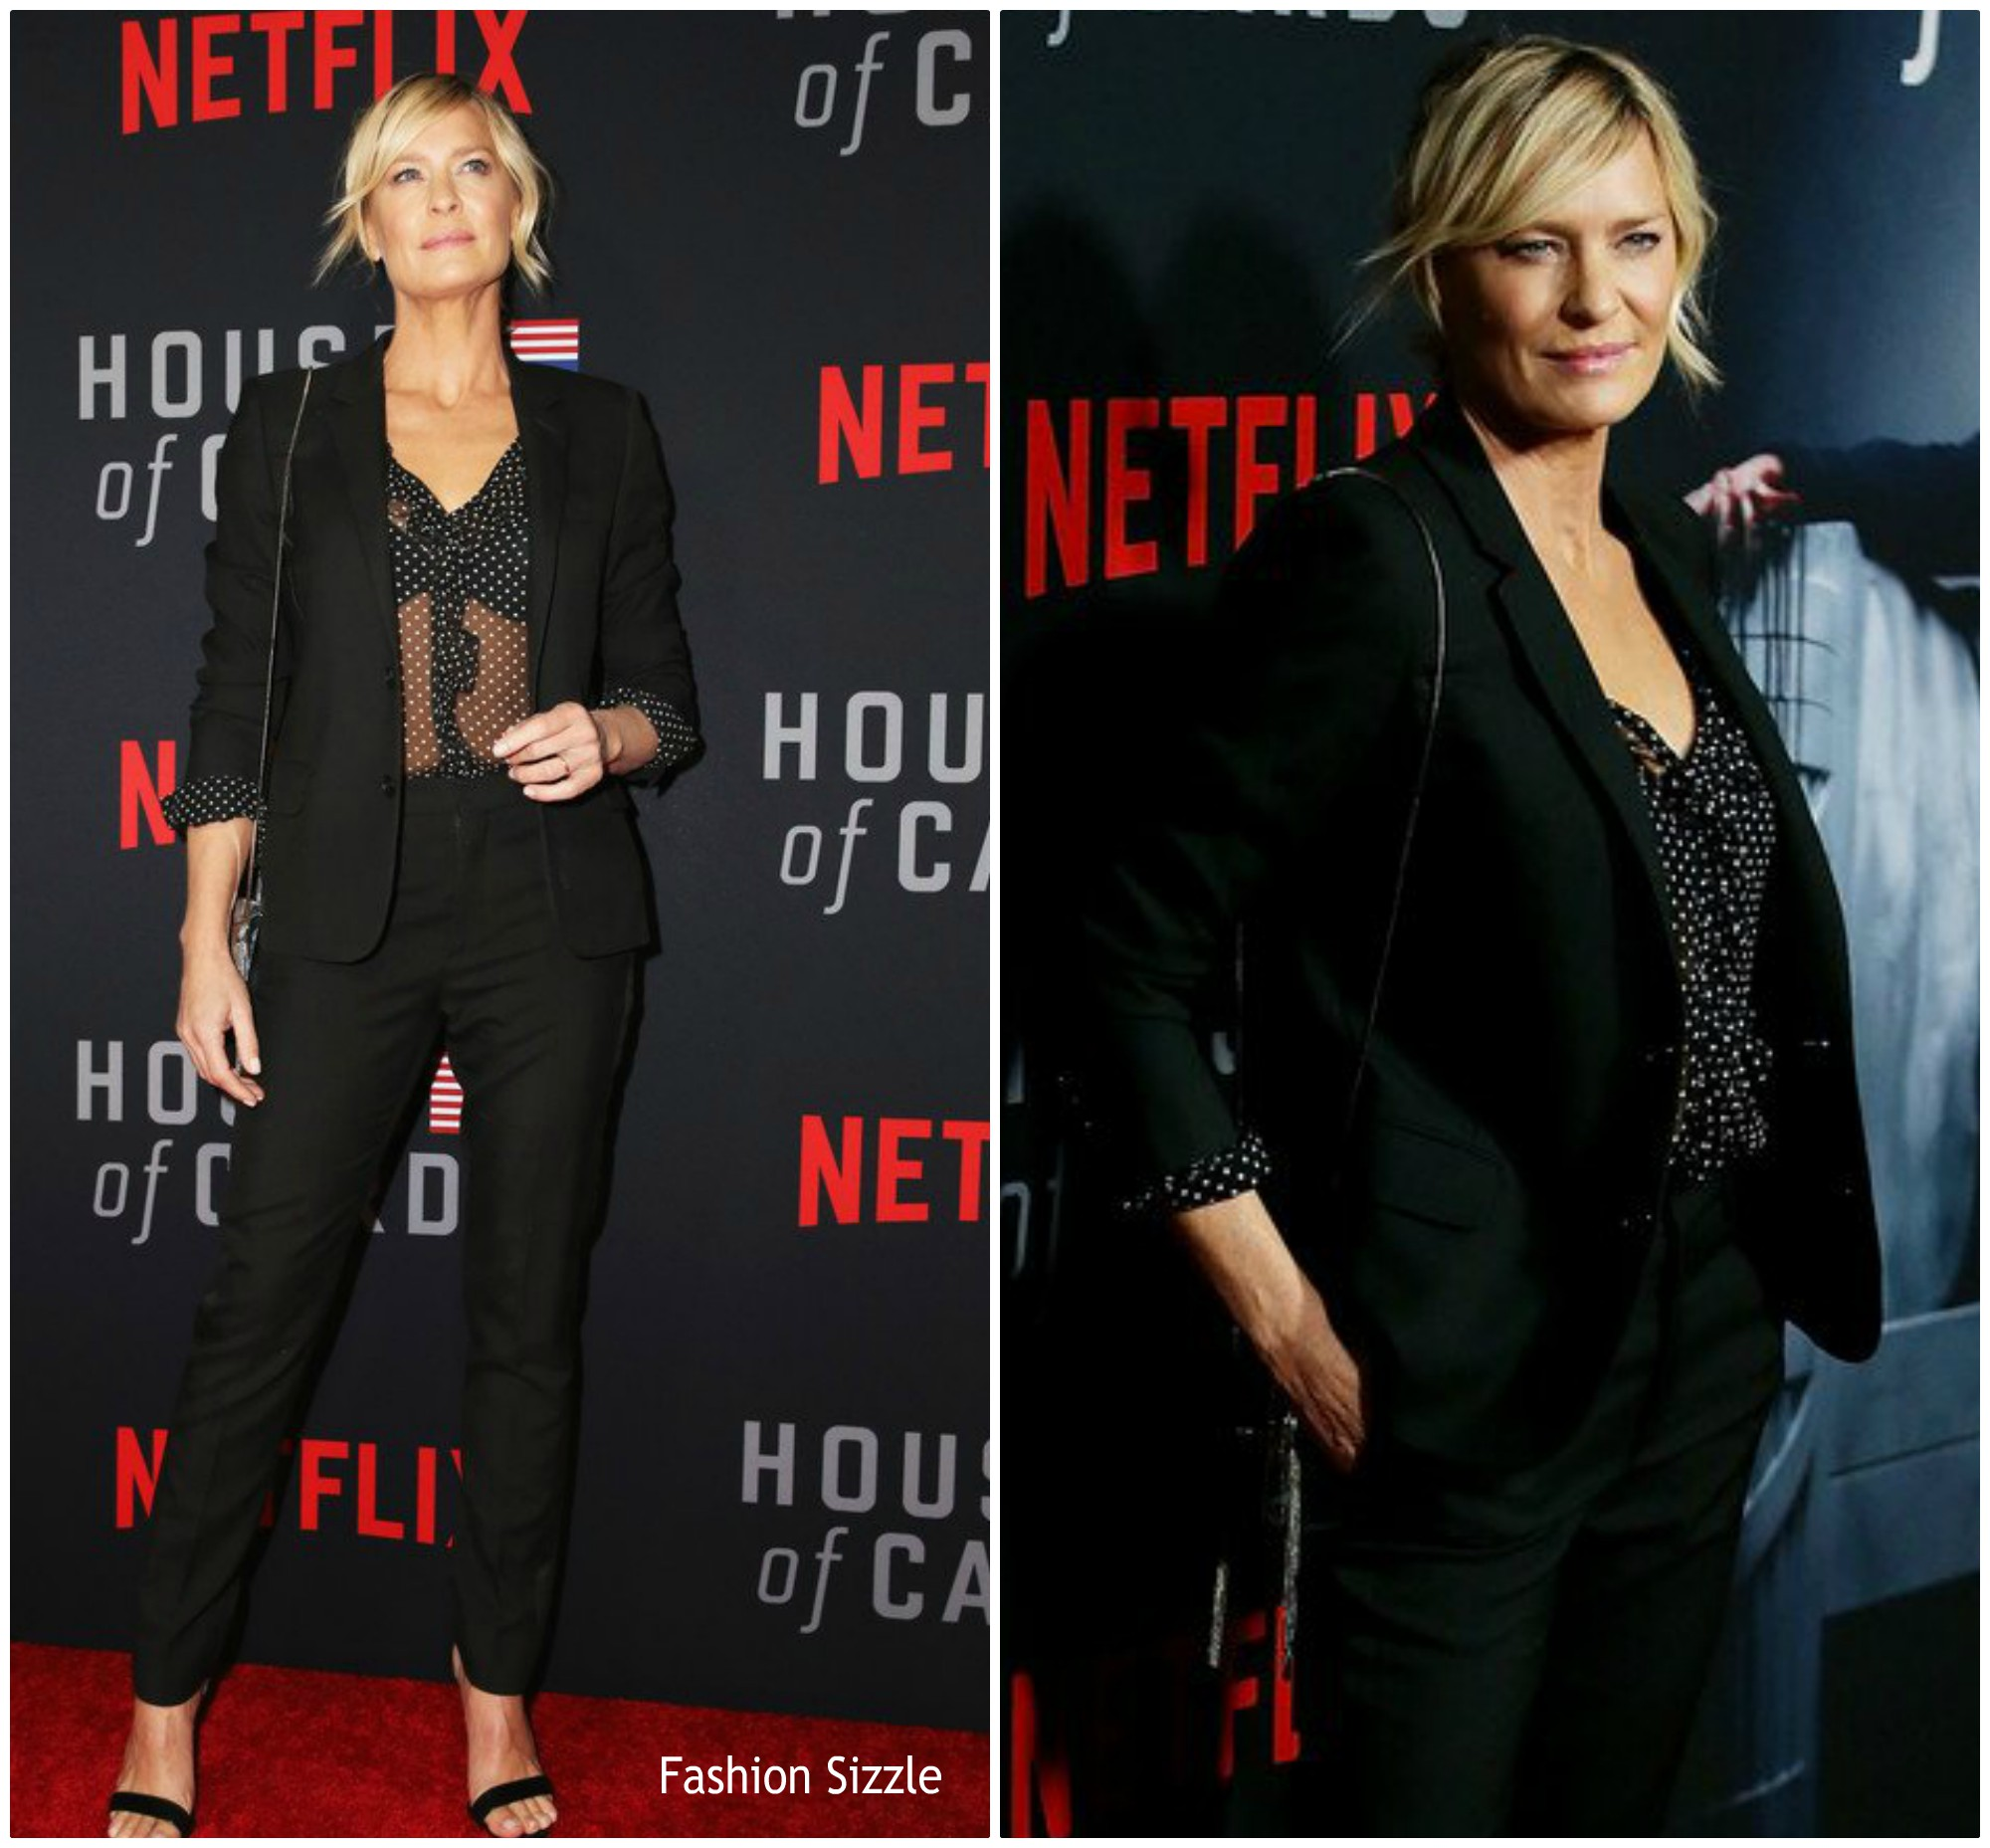 robin-wright-in-saint-laurent-sezane-house-of-cards-season-6-world-premiere